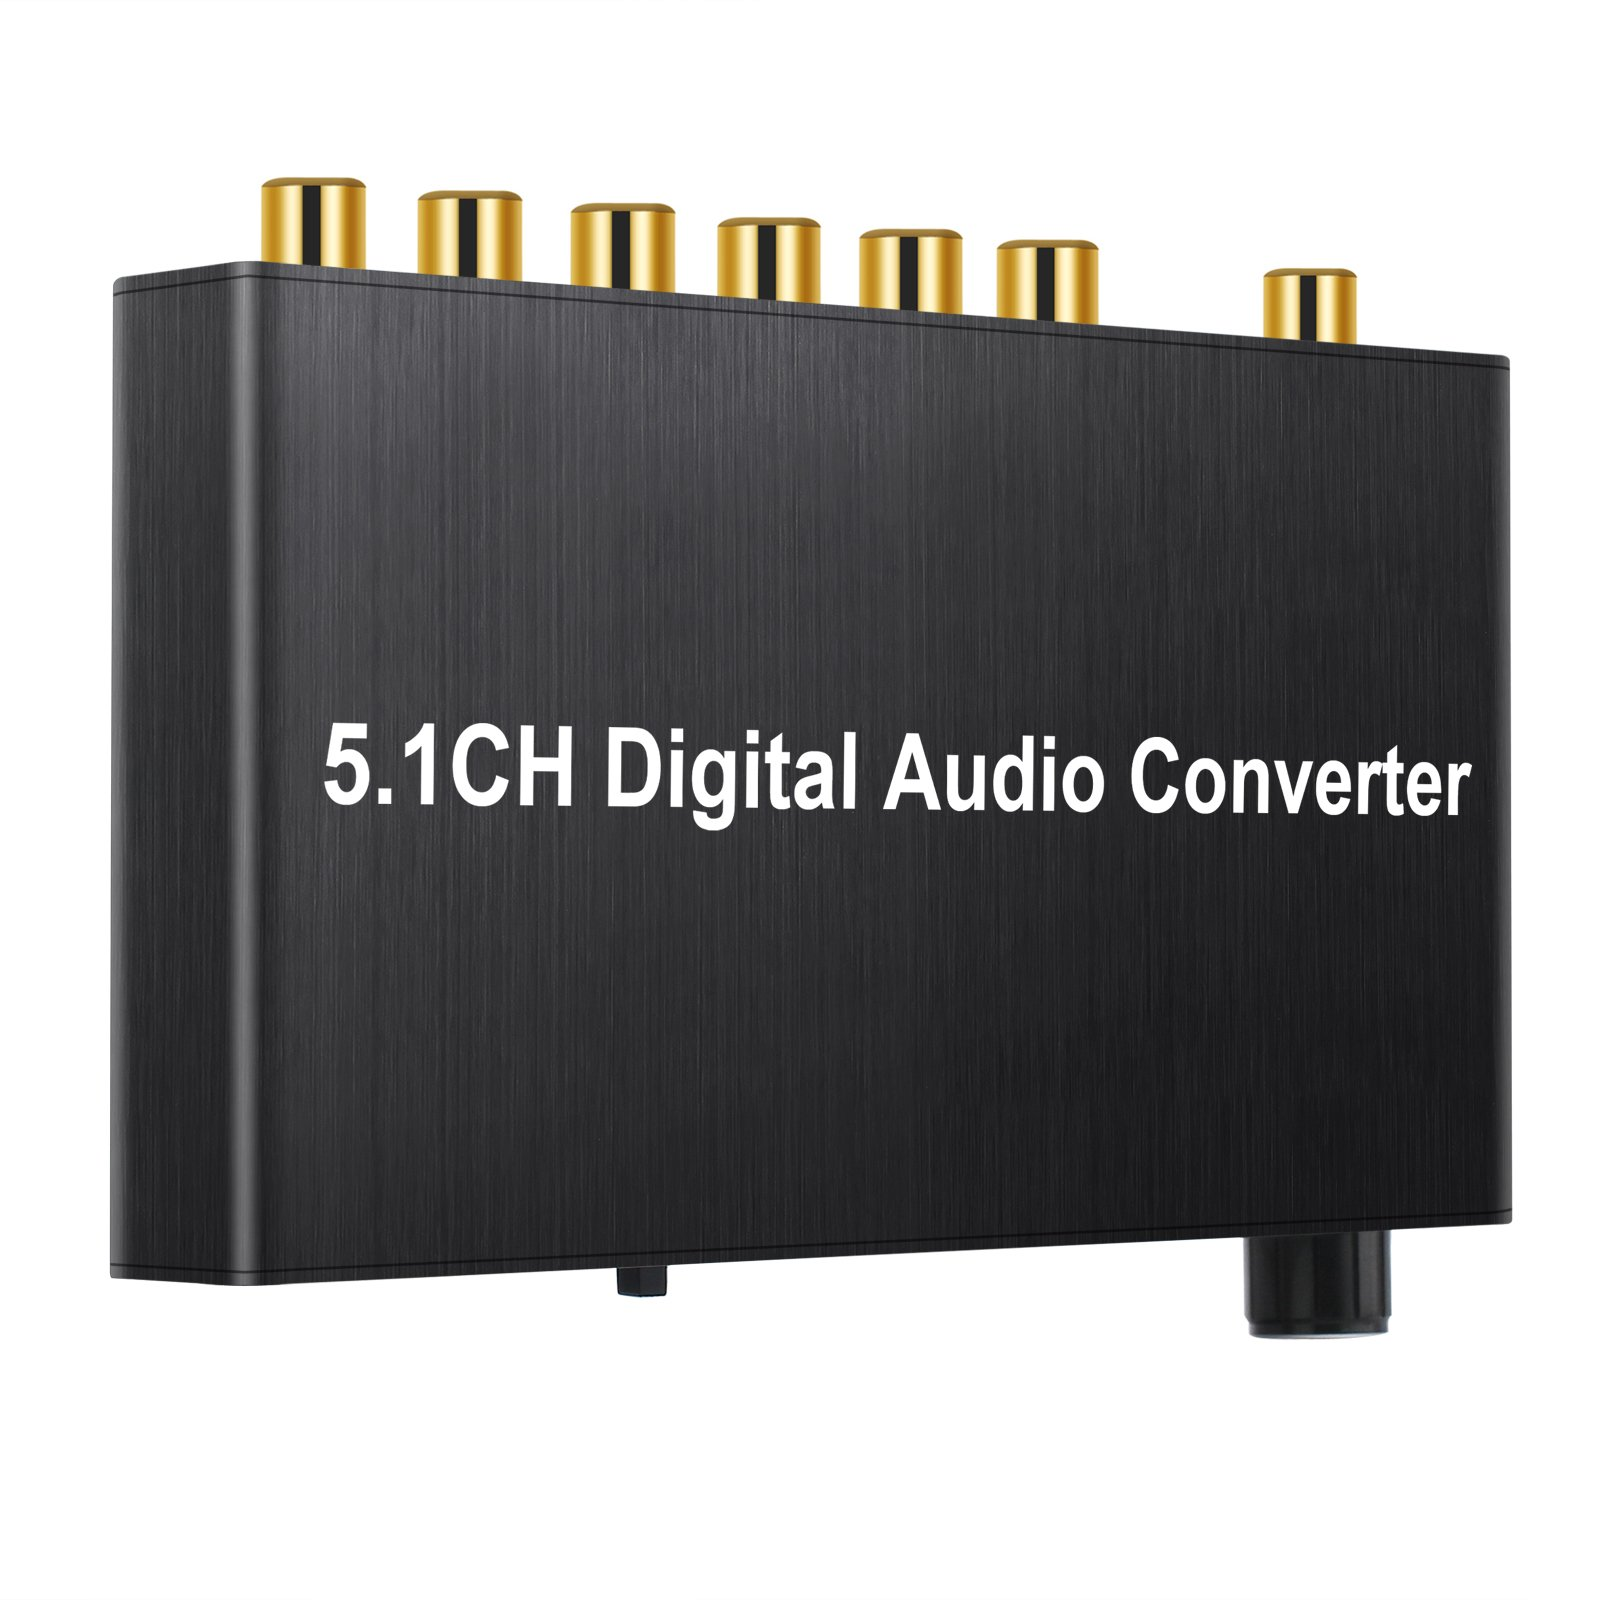 Proster 192kHz DAC Converter Decoder With Volume Control Support Dolby AC-3/DTS Digital Optical Coaxial Toslink to 5.1CH Analog and 3.5mm Jack Audio Converter Adapter For HDTV PS3 PS4 Blu-ray DVD